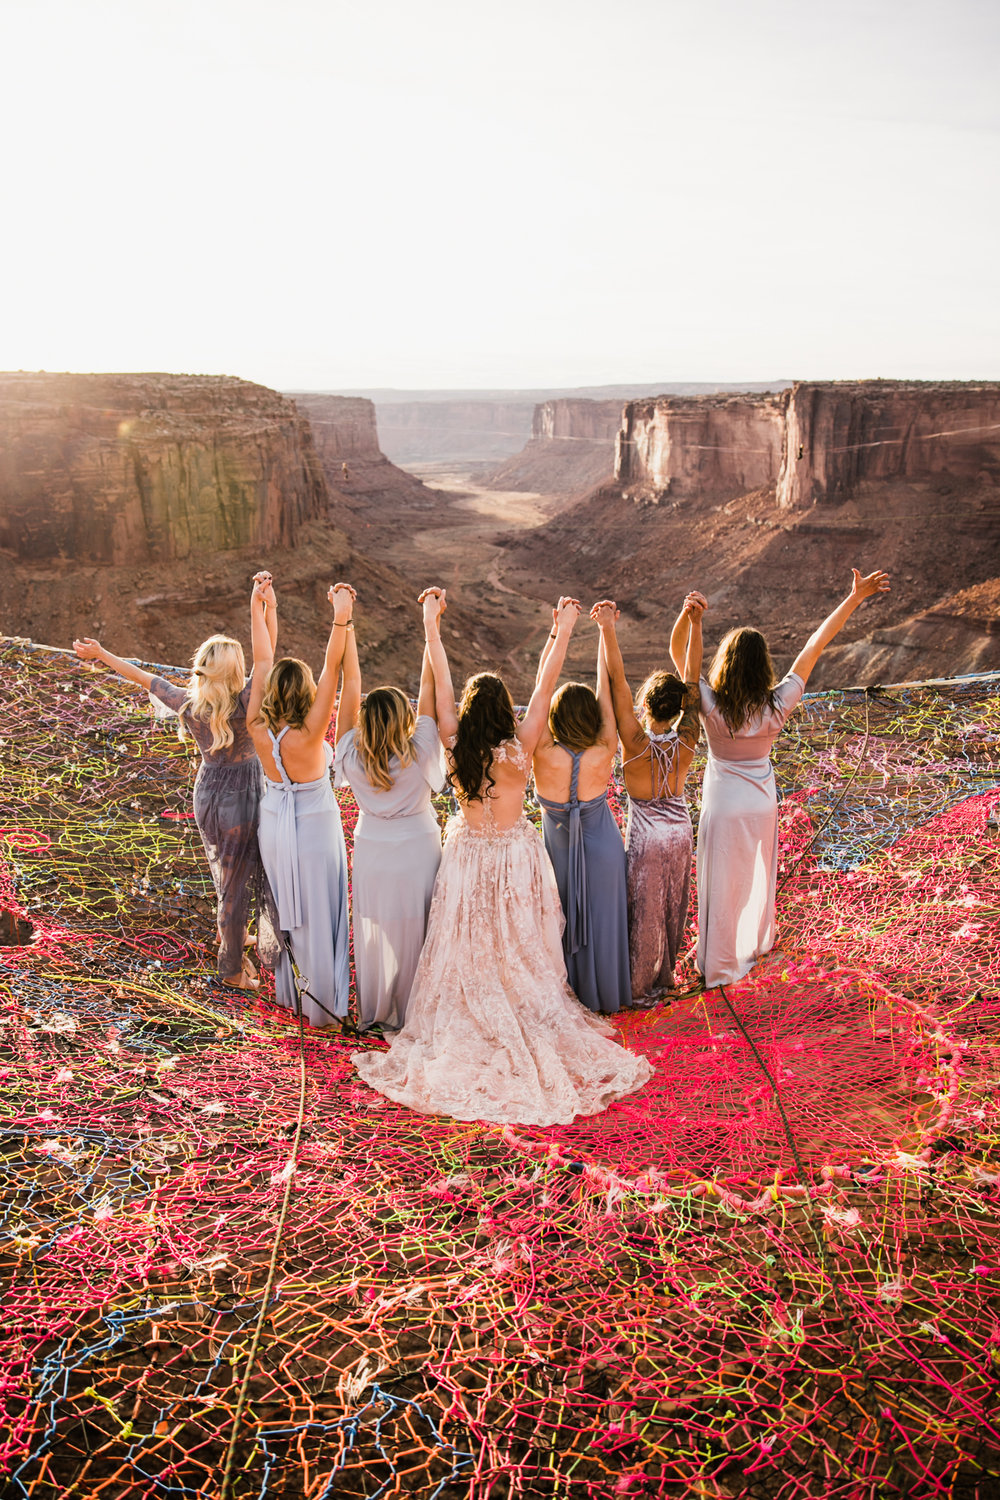 moab, utah spacenet elopement | destination adventure wedding photographers | the hearnes adventure photography | www.thehearnes.com